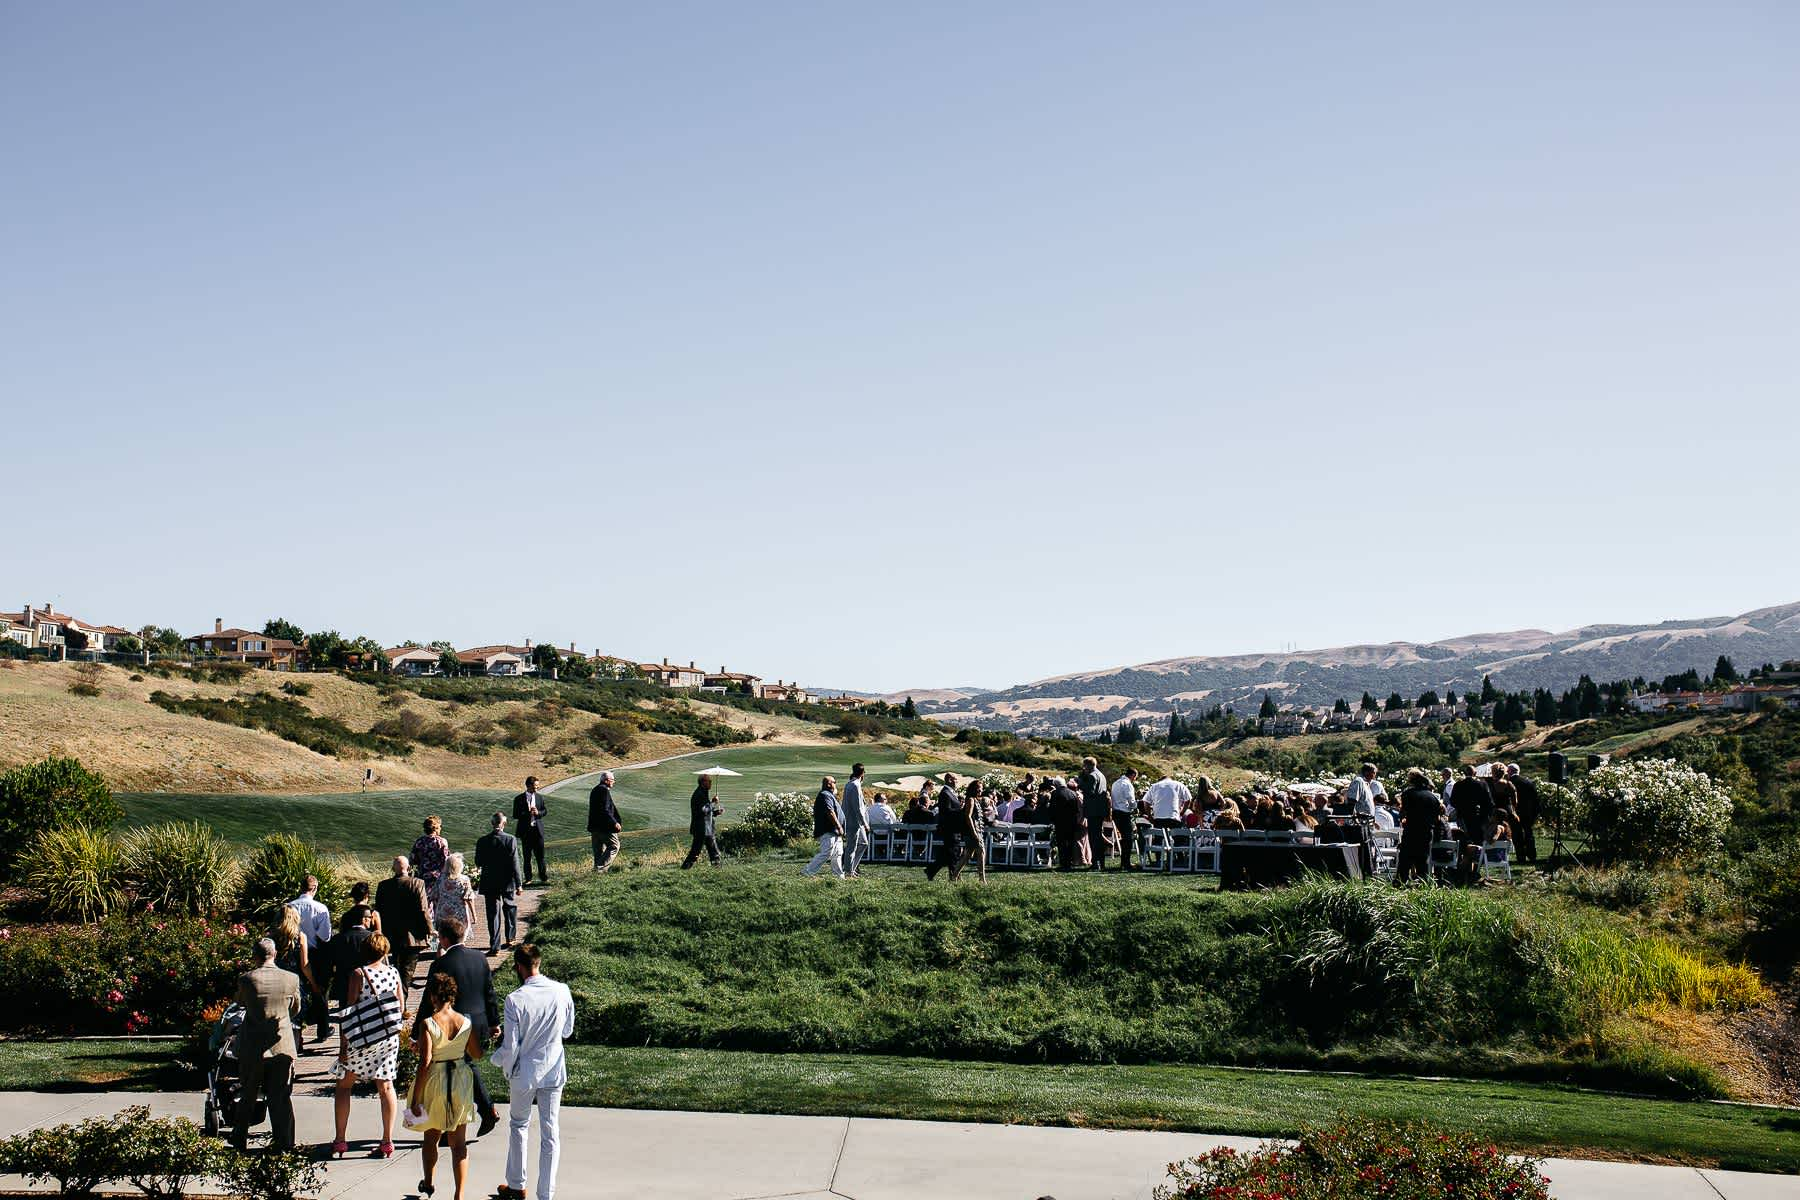 san-ramon-bridges-golf-club-summer-bay-area-wedding-61